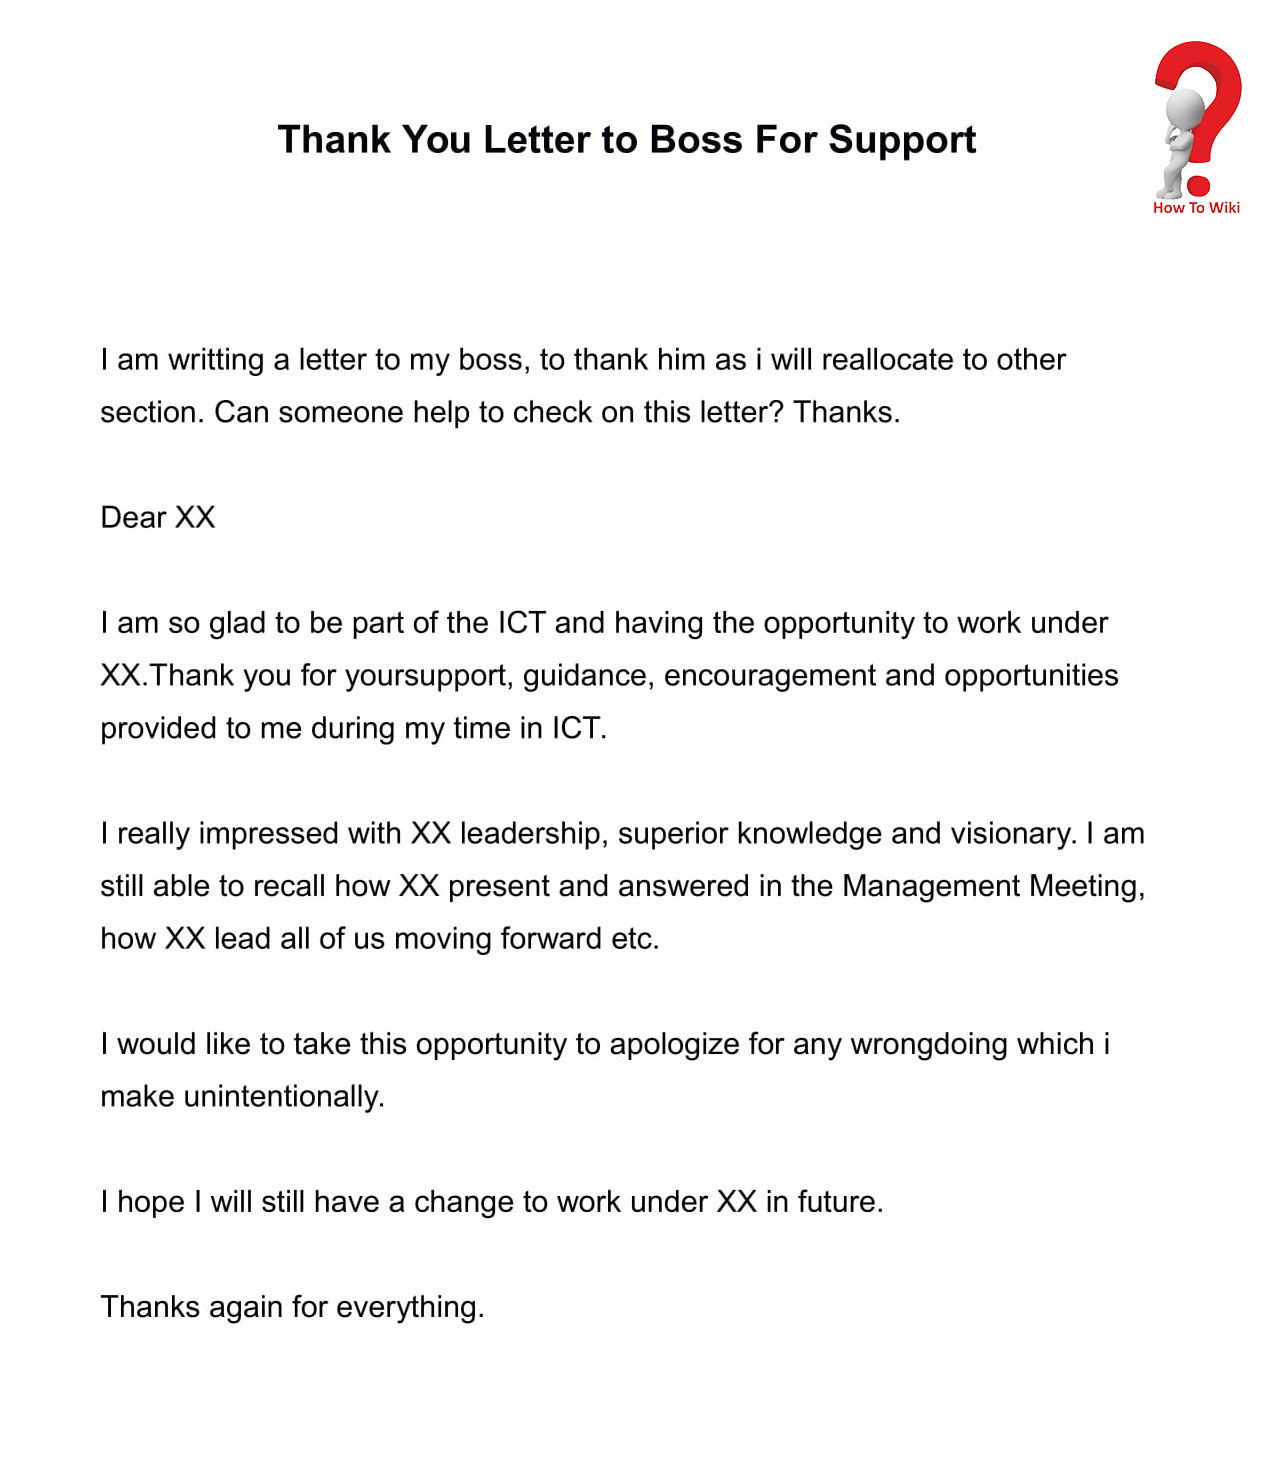 Thank you Letter o boss for support